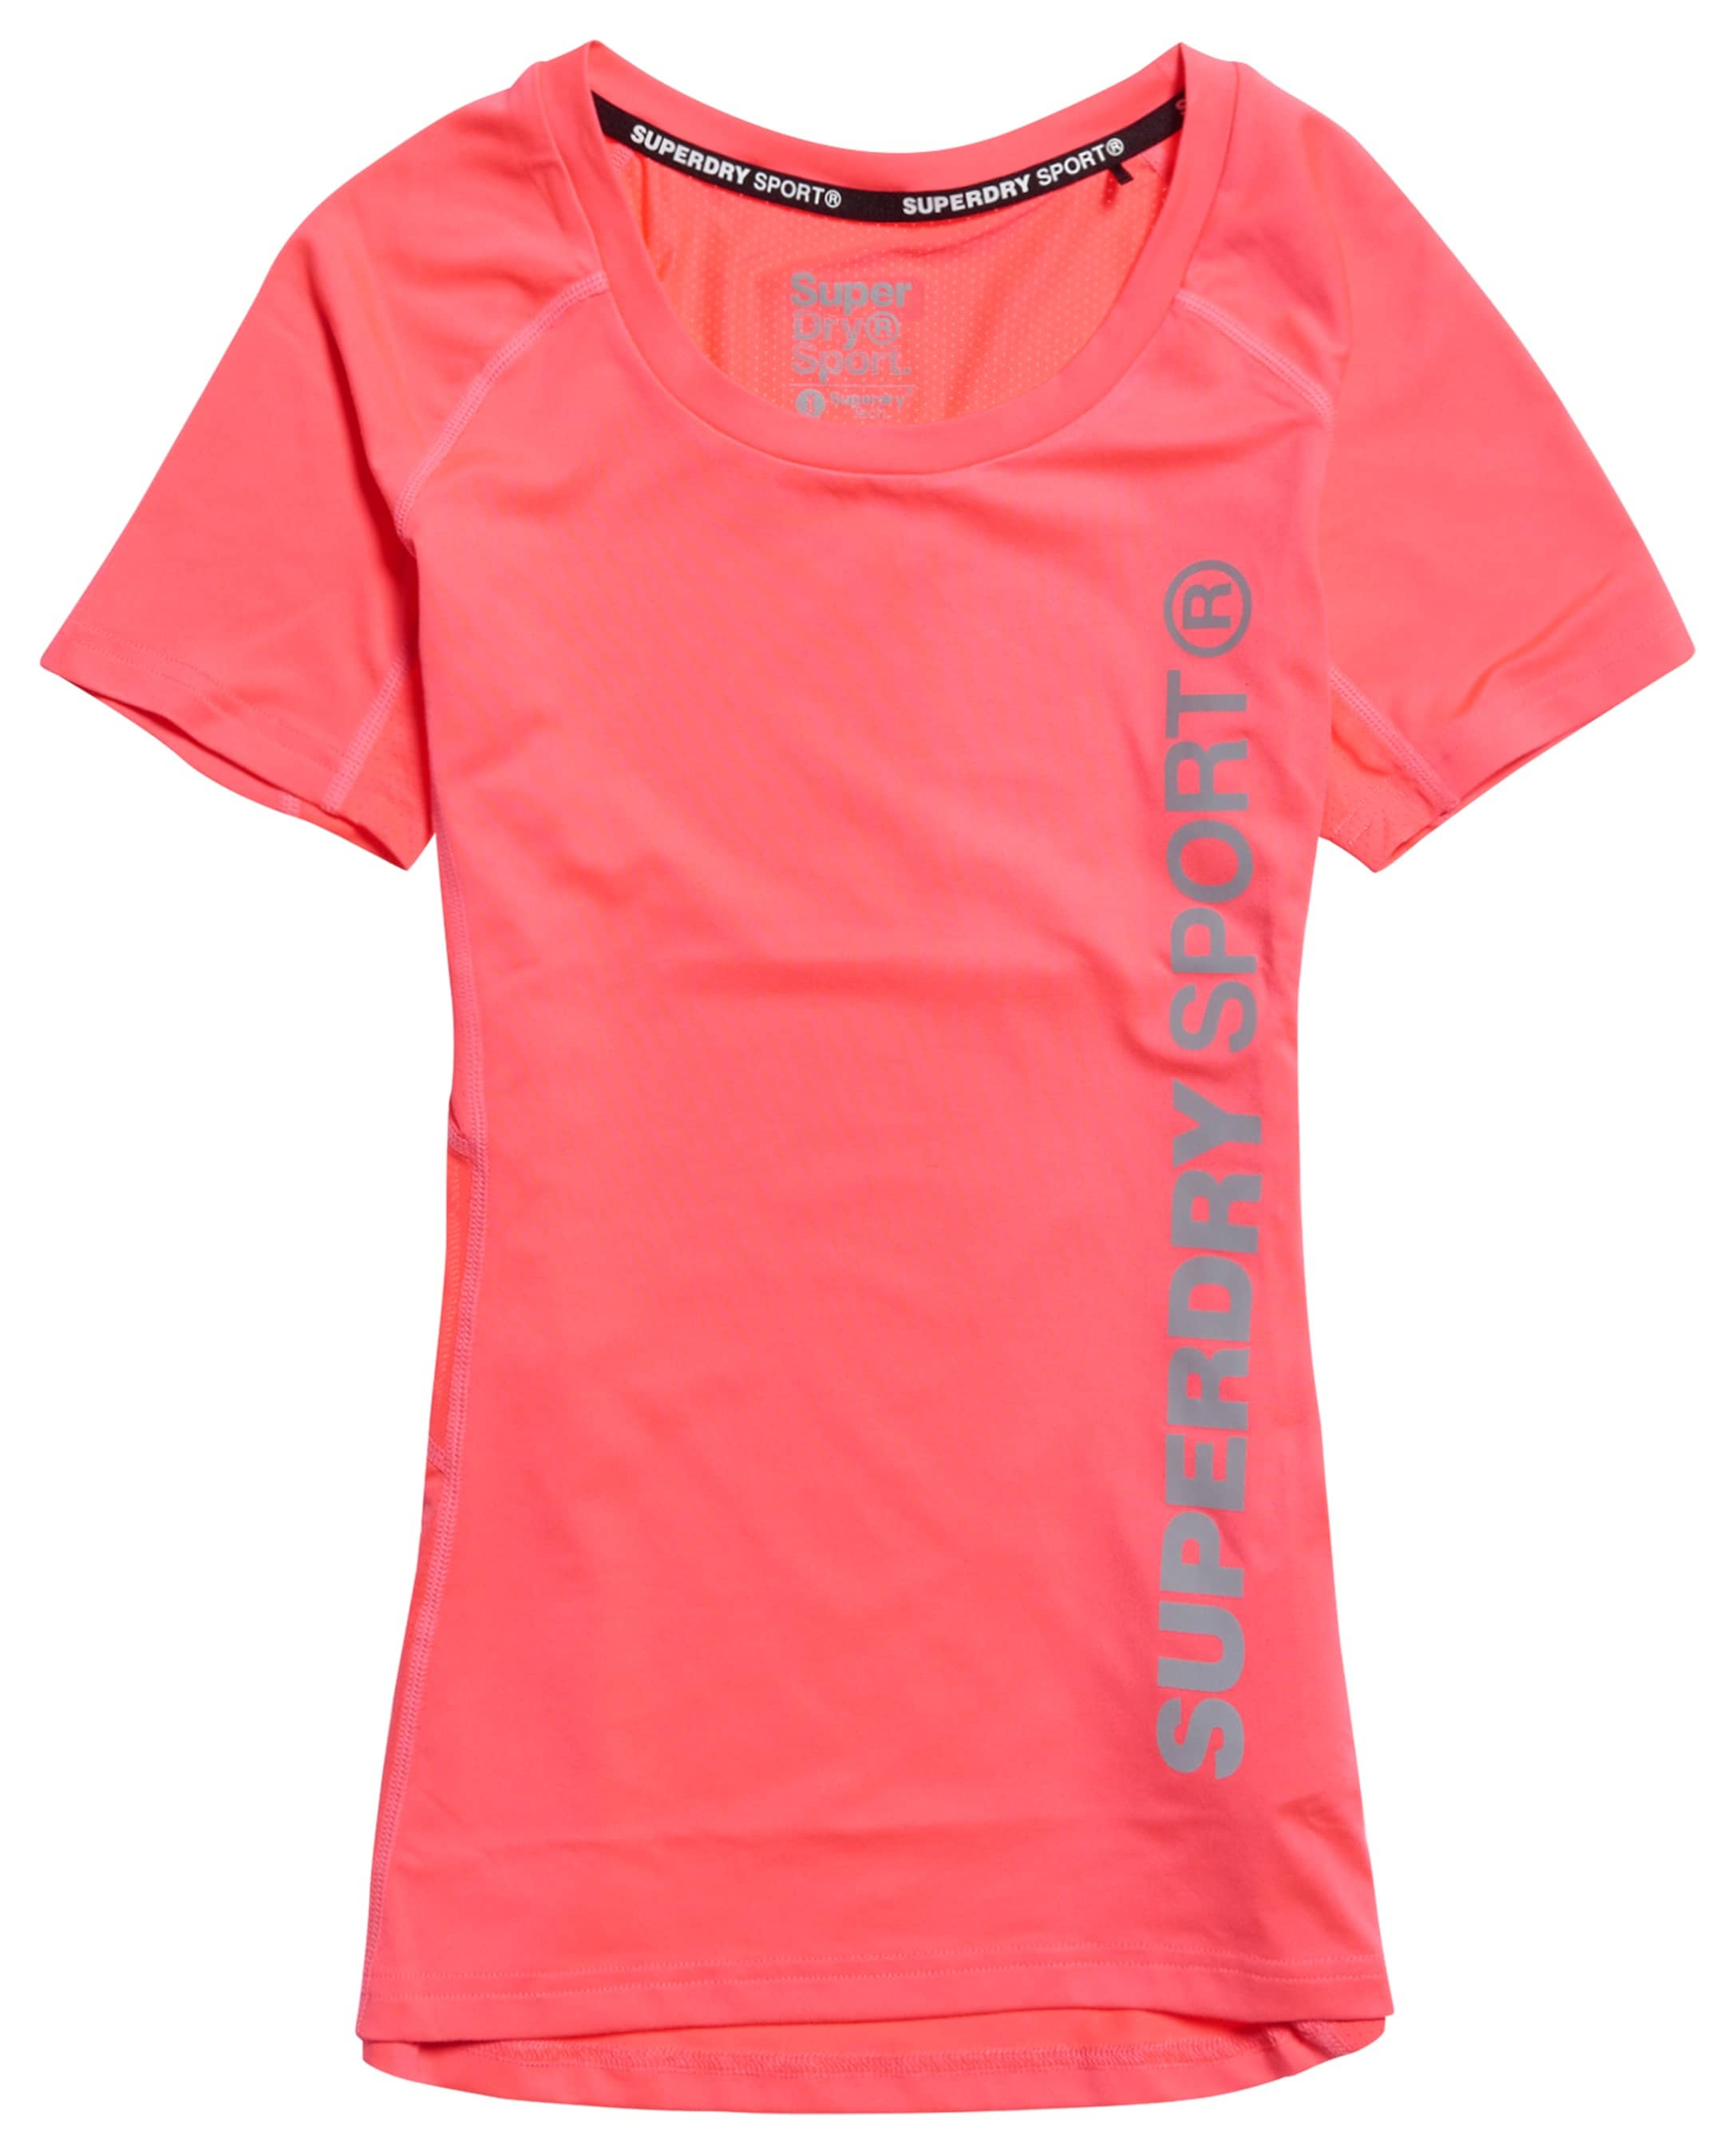 Superdry-Core-Fitted-Mesh-Panel-Tee-gs30031ar_xl7